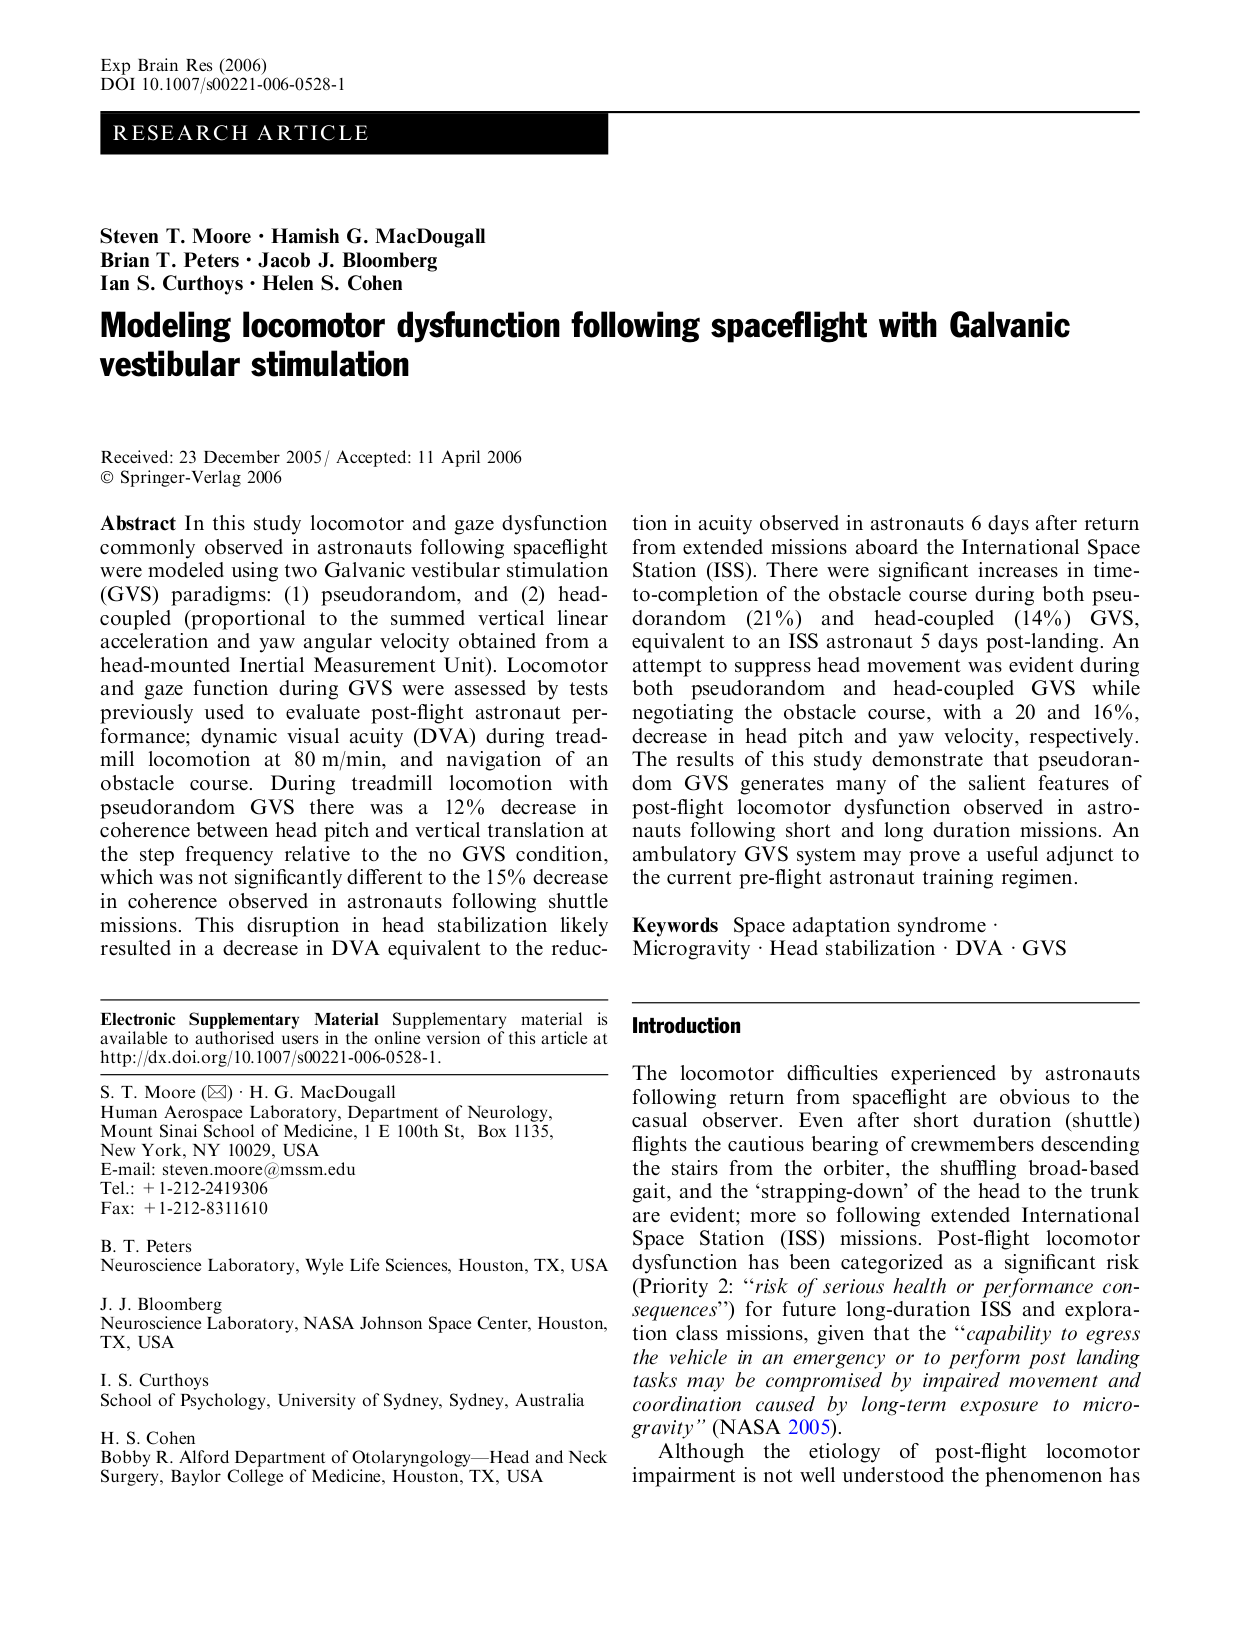 Effects of Caloric and Galvanic Vestibular Stimulation on Reduced Awareness